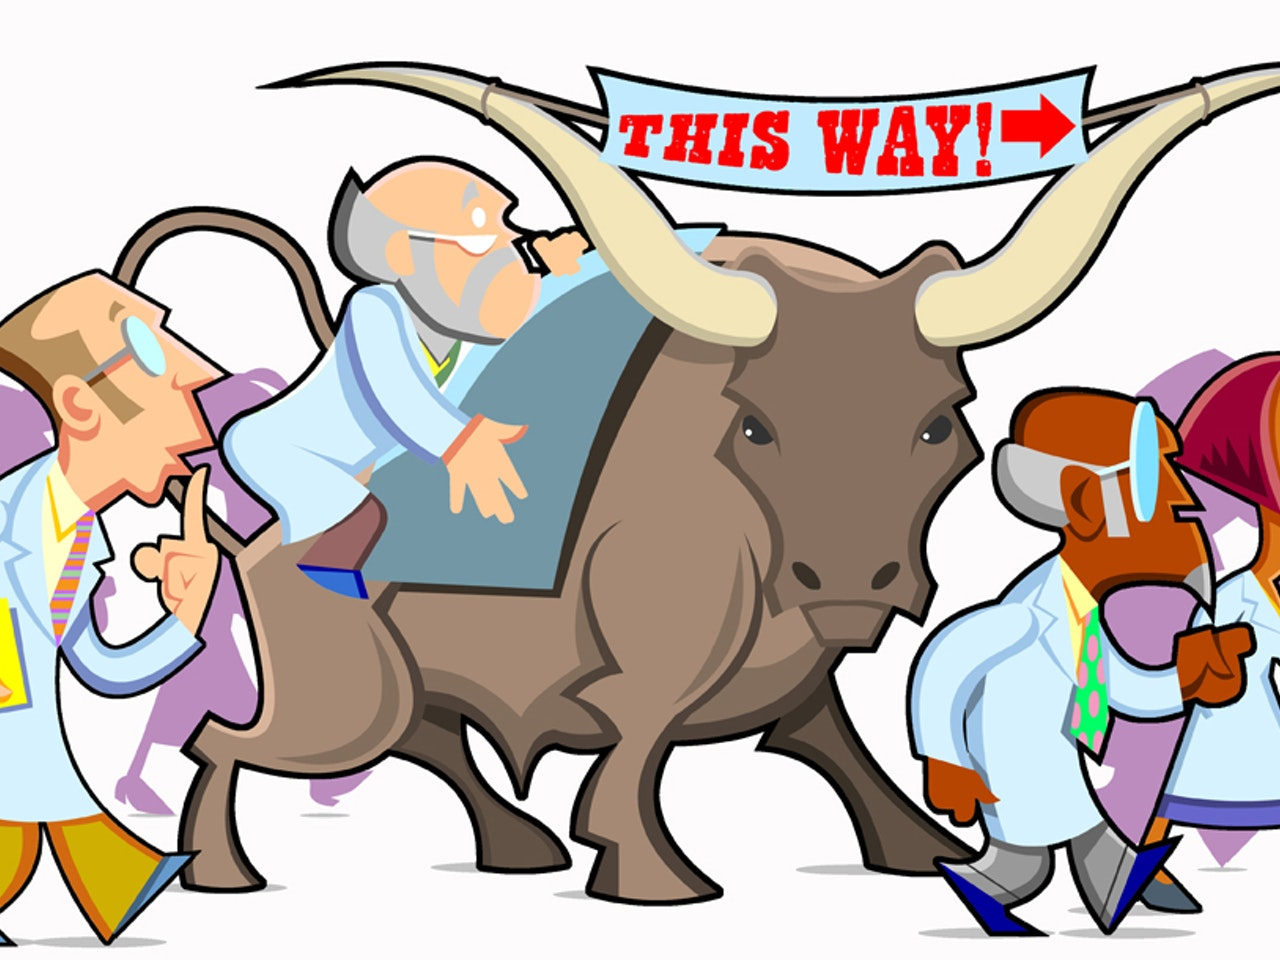 longhorn bull scientists science internet funny happy humorous comical colourful graphic cartoon anime